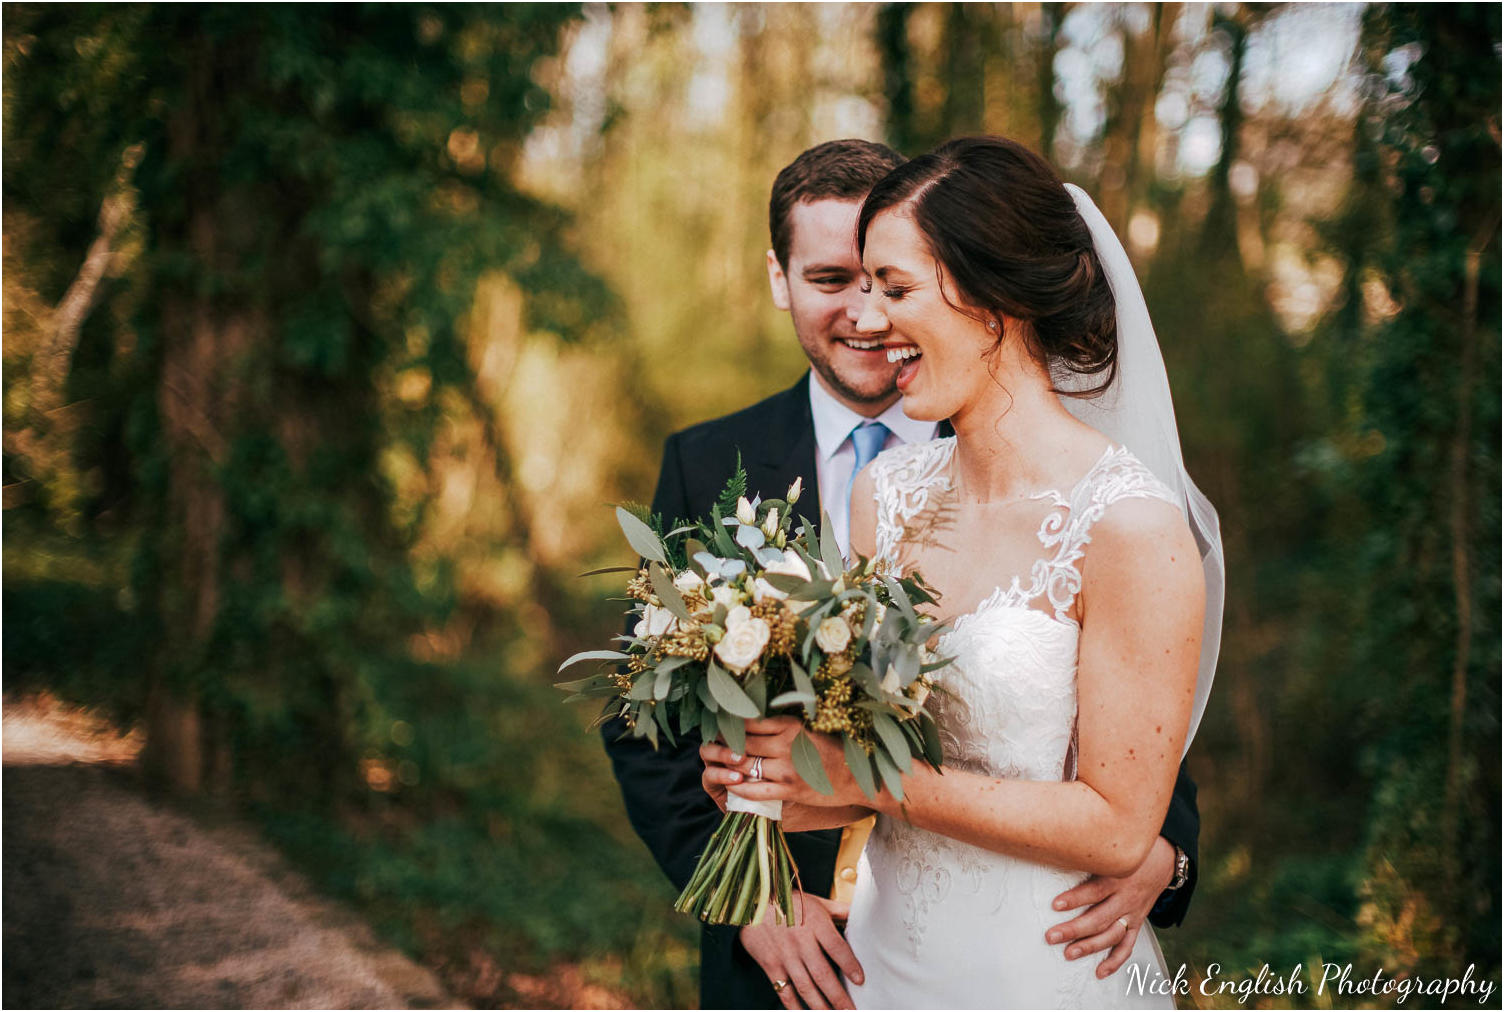 Mitton_Hall_Wedding_Photographer-89.jpg